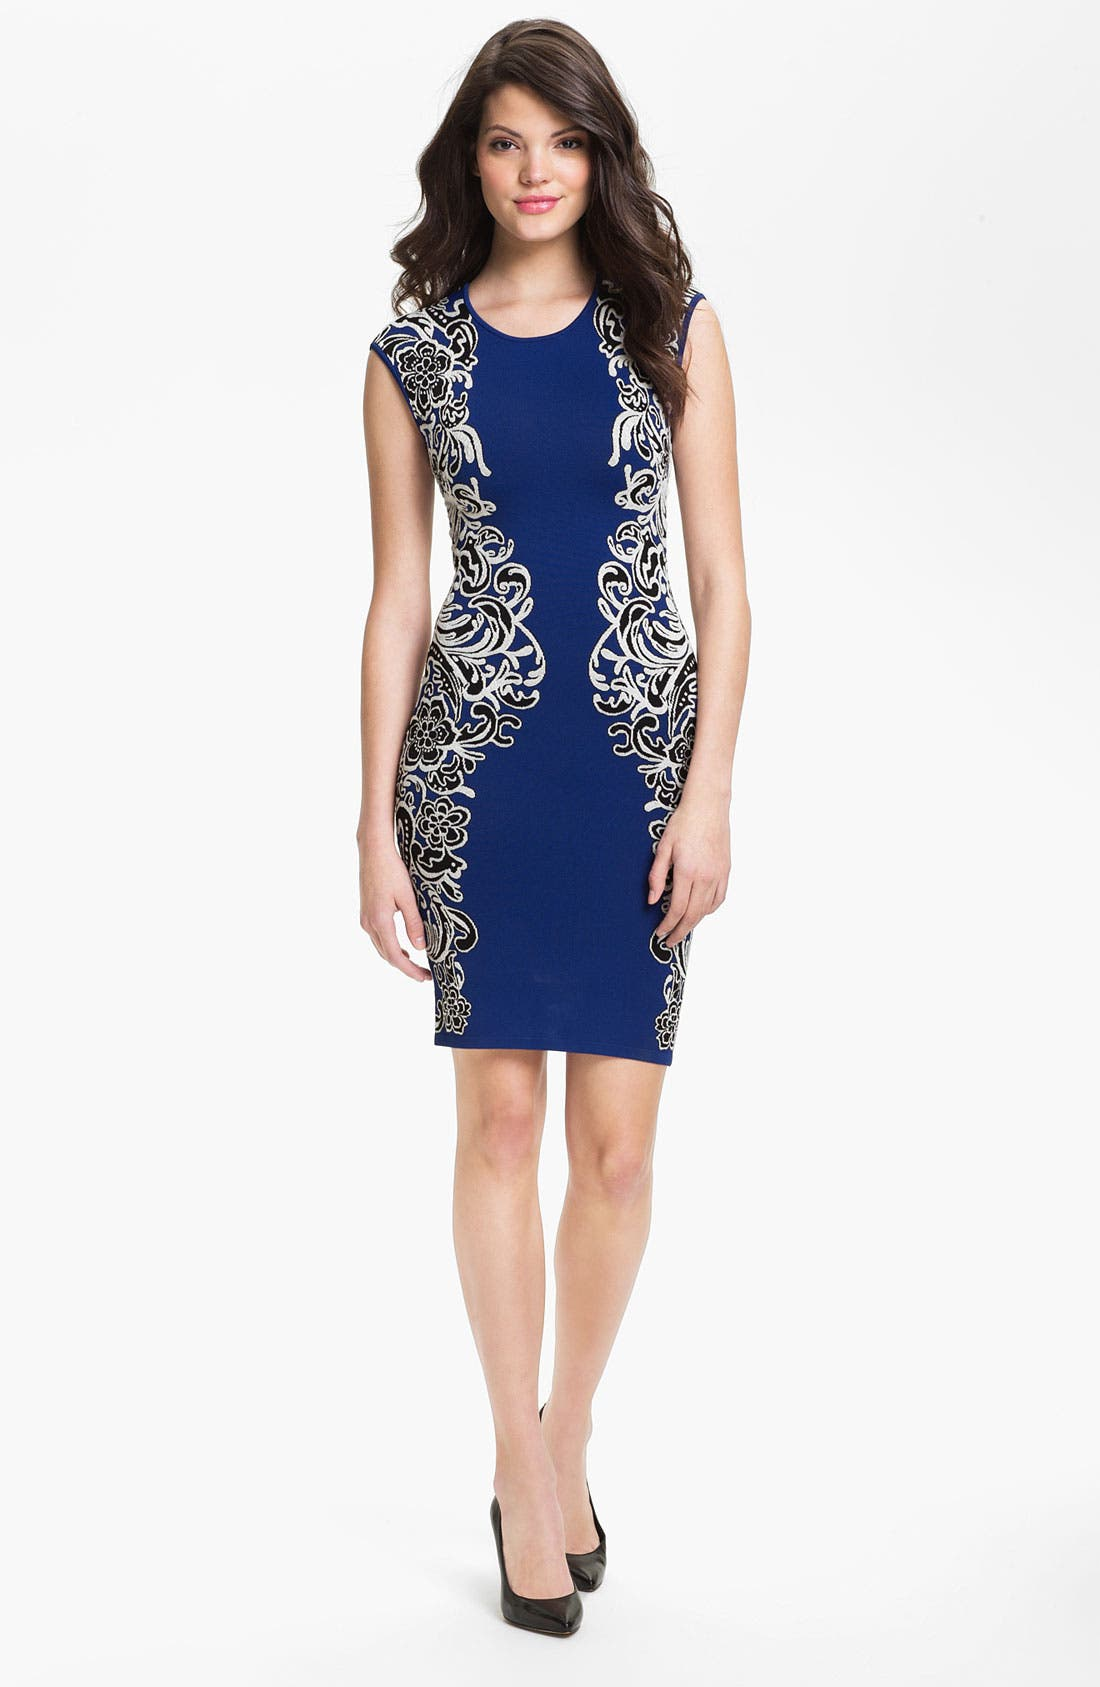 Main Image - BCBGMAXAZRIA 'Tapestry' Sheath Dress